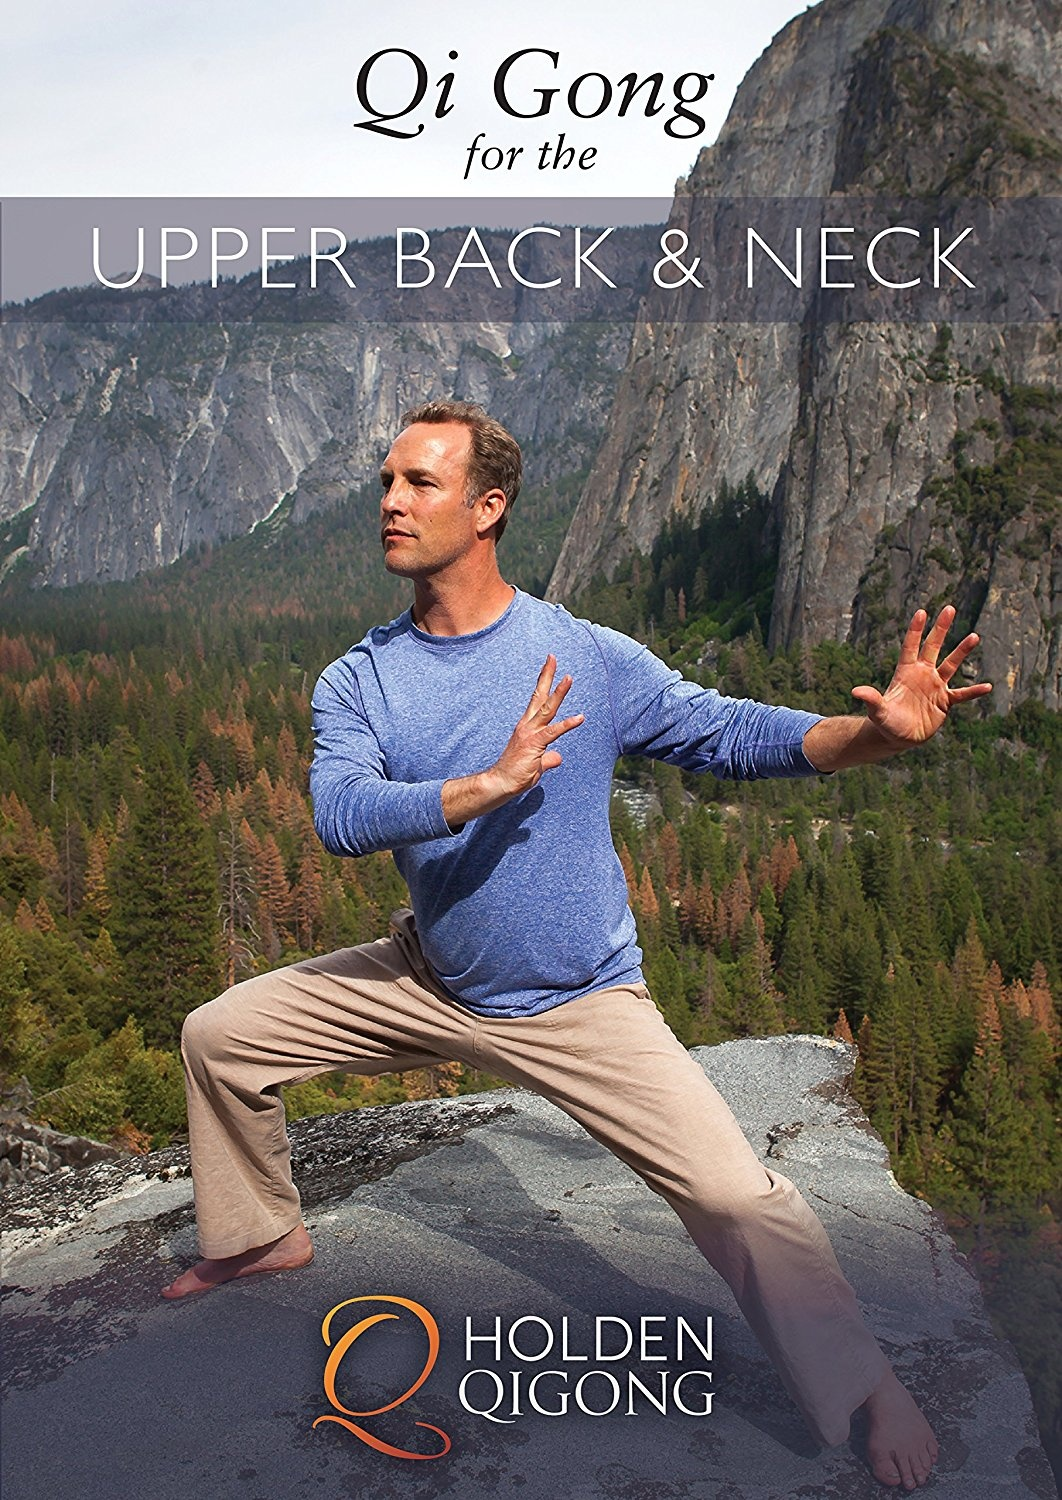 Qigong-for-Upper-Back-and-Neck-Pain-Relief-with-Lee-Holden-DVD-YMAA-ALL